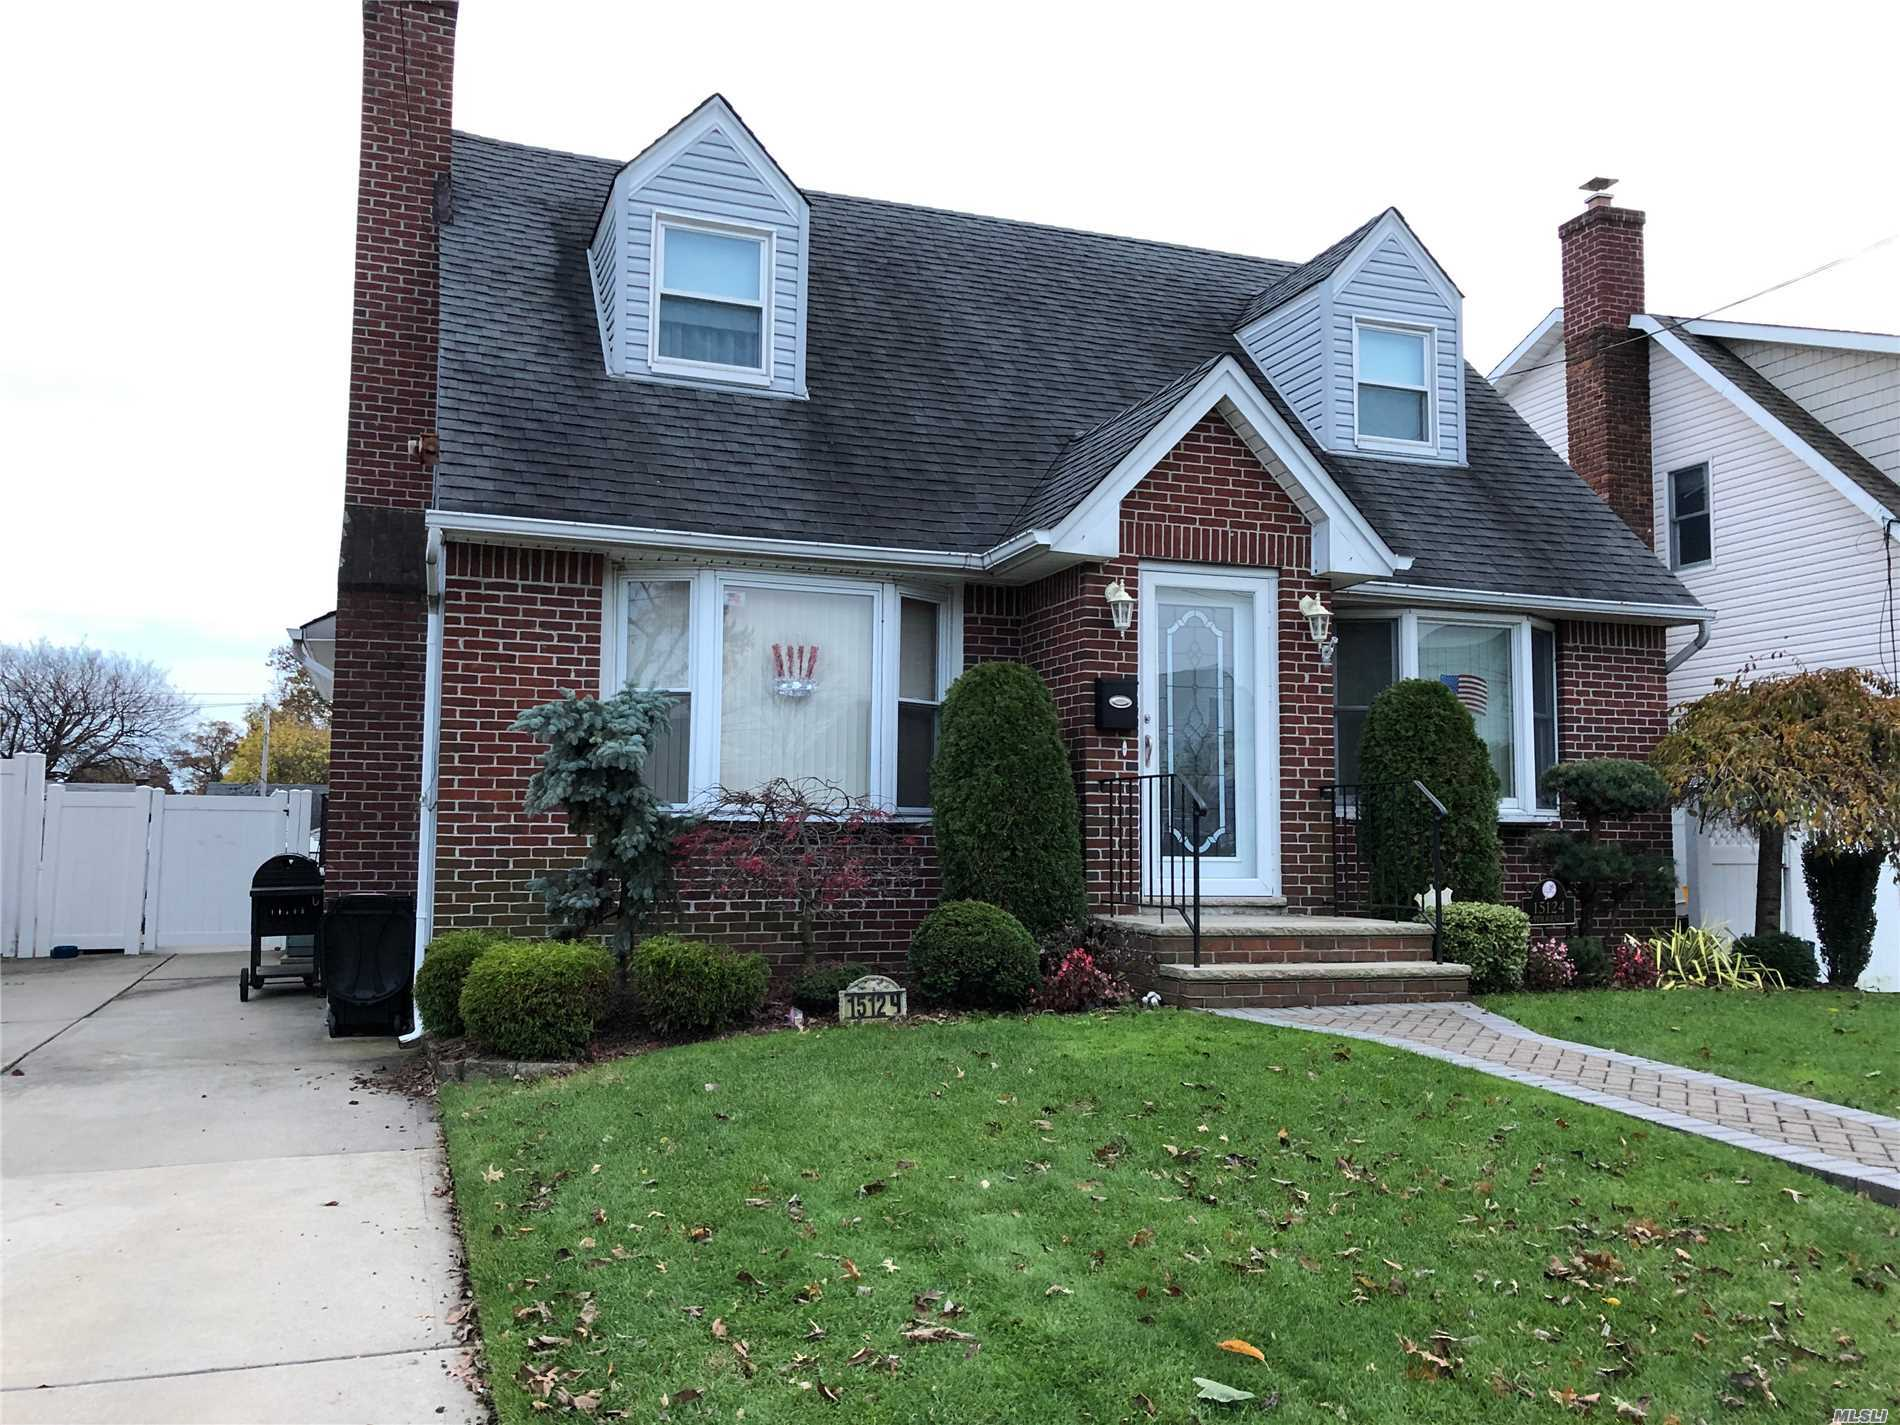 Expanded 4 Br, 3 Full Bath Cape On Quiet Block In North Whitestone. Meticulously Cared For And Updated With Quality Materials. Granite And Stainless Steel Kit W Radiant Heat Ceramic Tiled Fl. Lr W Wbfpl, Den Can Be 5 Br, 2 Fl: Spacious Layout With Large Mbr, 2 Br Is Mbr Sized, And 3 Br Can Be 2 Rooms. All New Windows, French Drain, Gorgeous Yard W/ 16 X 30 Heated In Ground Saltwater Pool, Pavers, Double Fencing. Cac, Gas Heat, Security System